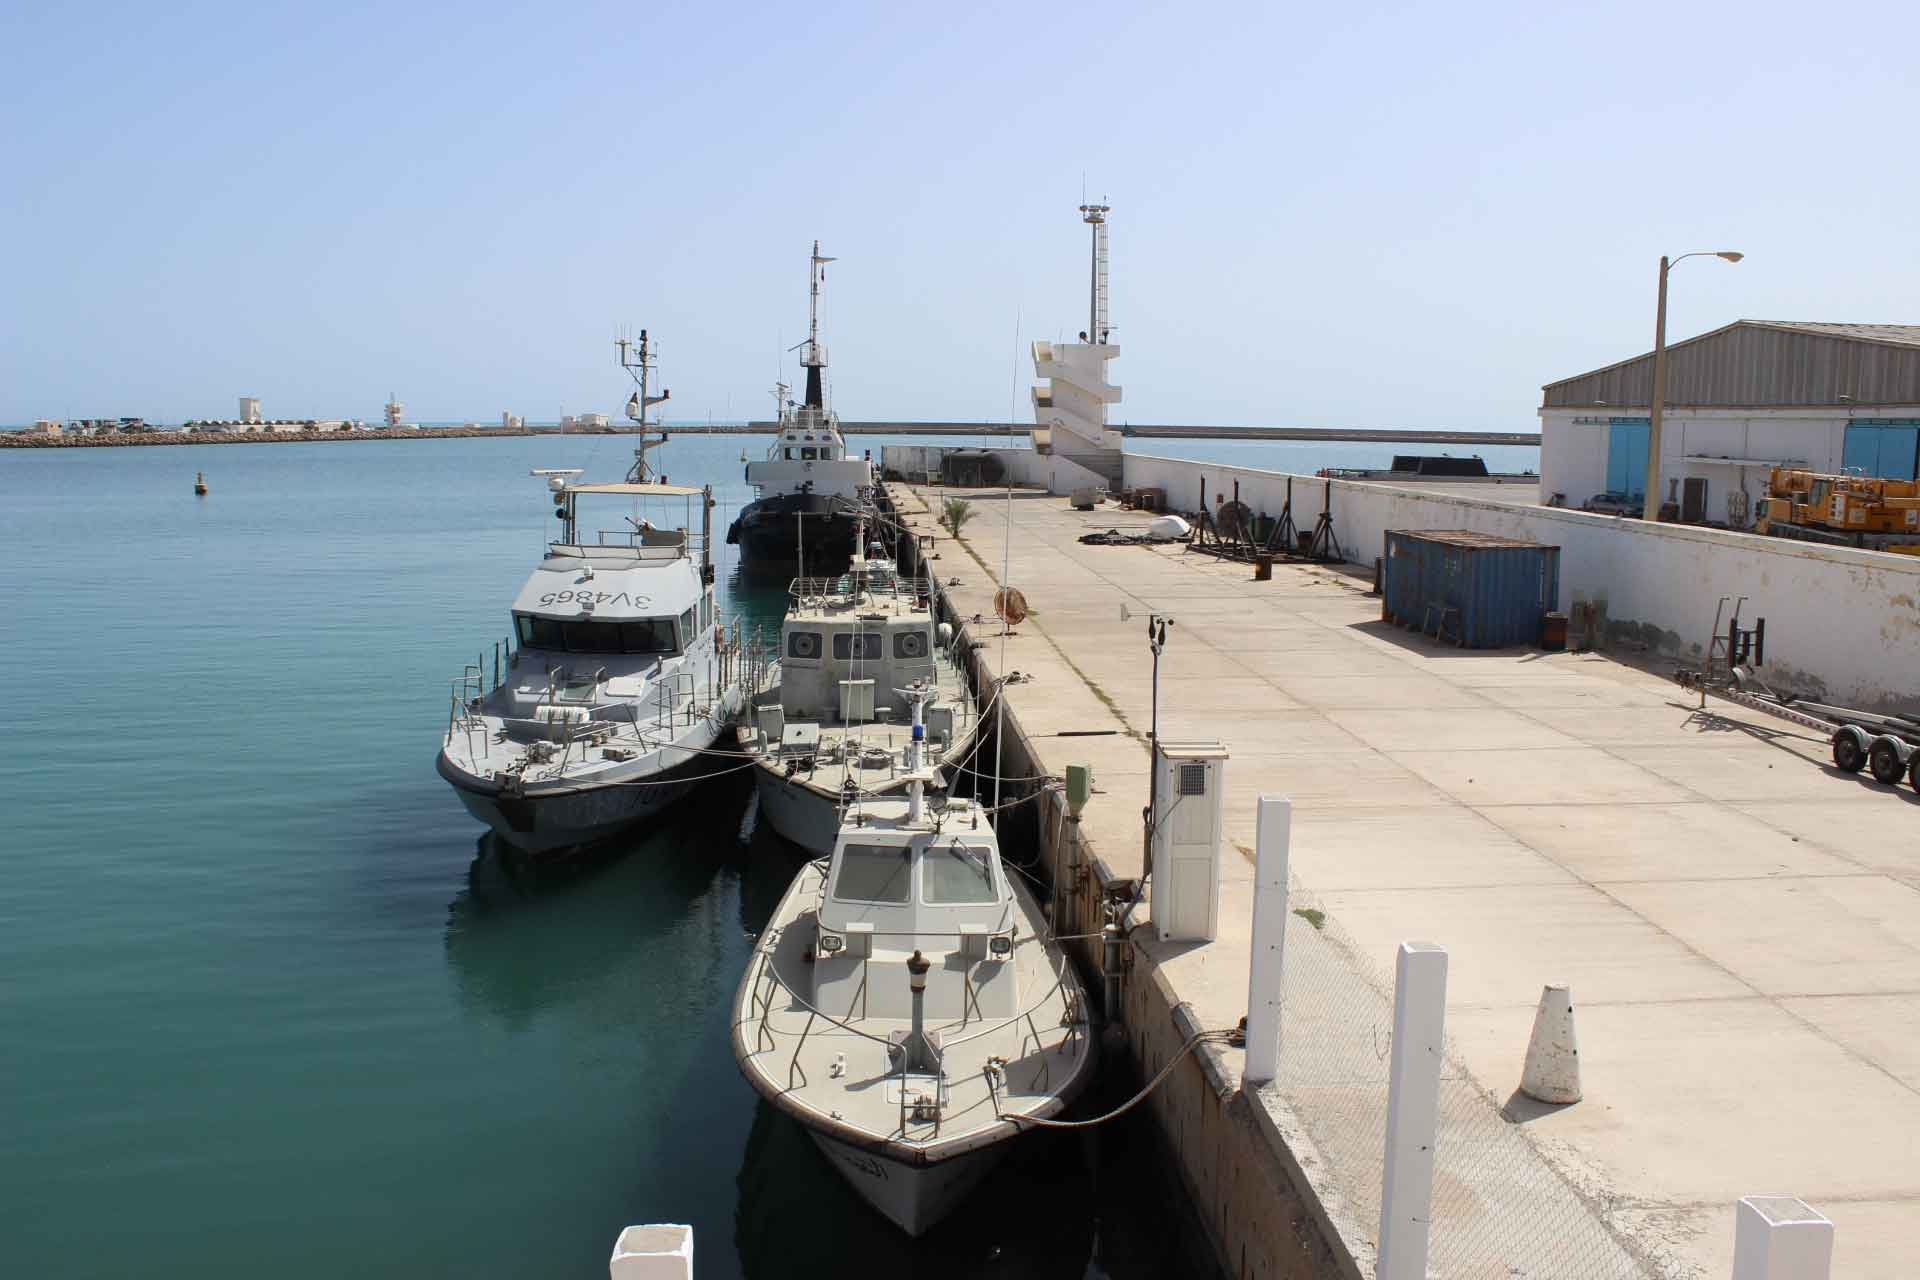 LE PORT DE COMMERCE DE ZARZIS